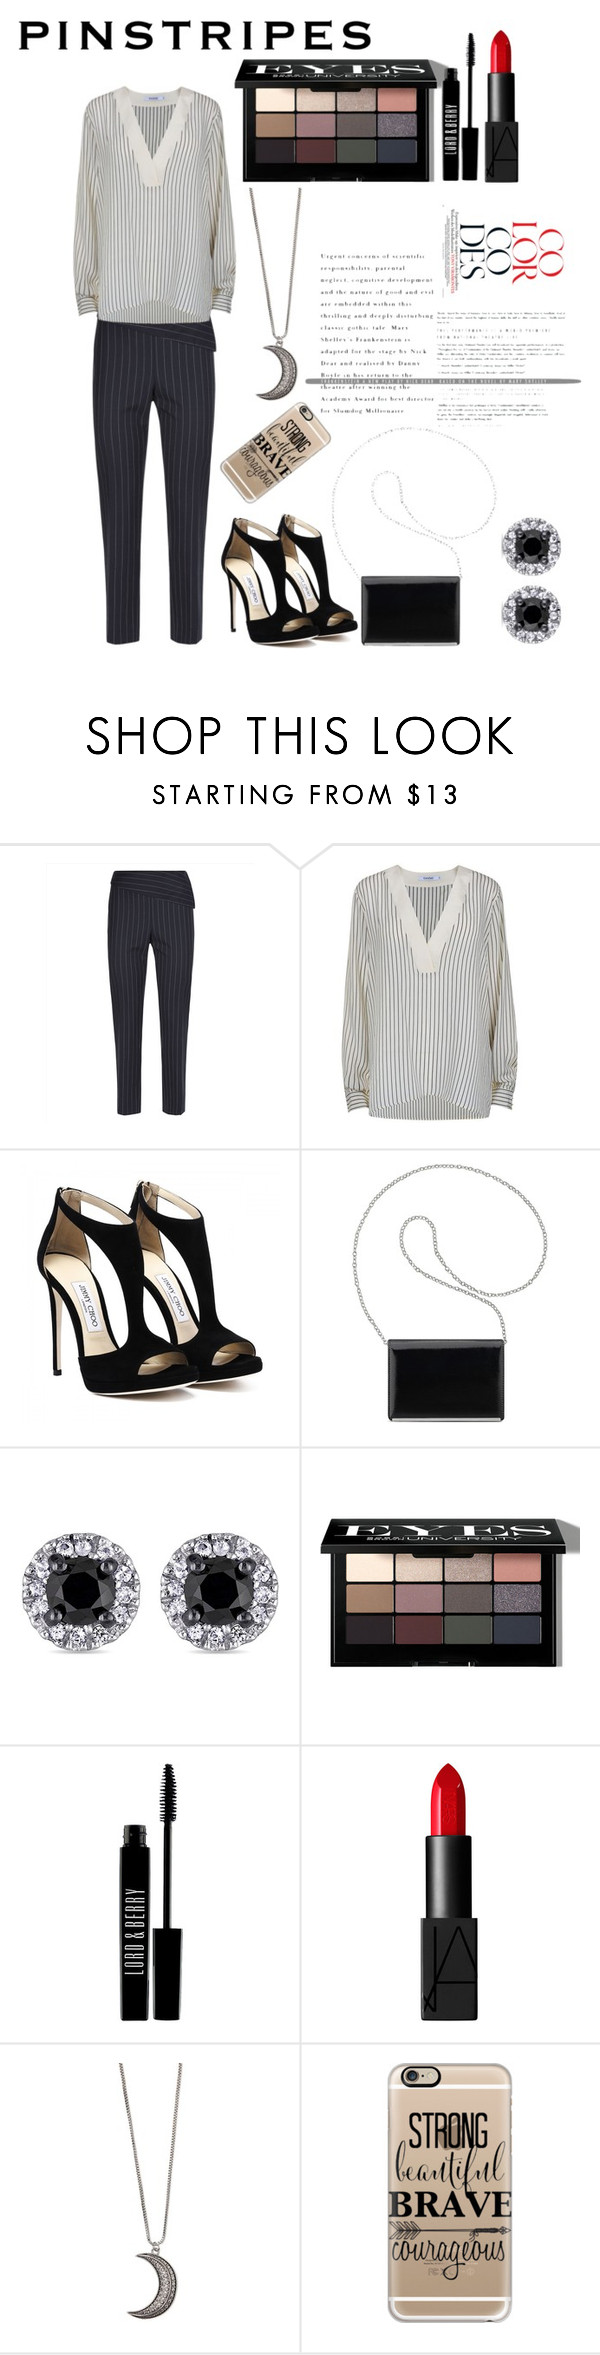 """""""Pinstripes"""" by calbug2003 ❤ liked on Polyvore featuring Jaeger, Gestuz, Nine West, Bobbi Brown Cosmetics, Lord & Berry, NARS Cosmetics, Gypsy Warrior and Casetify"""